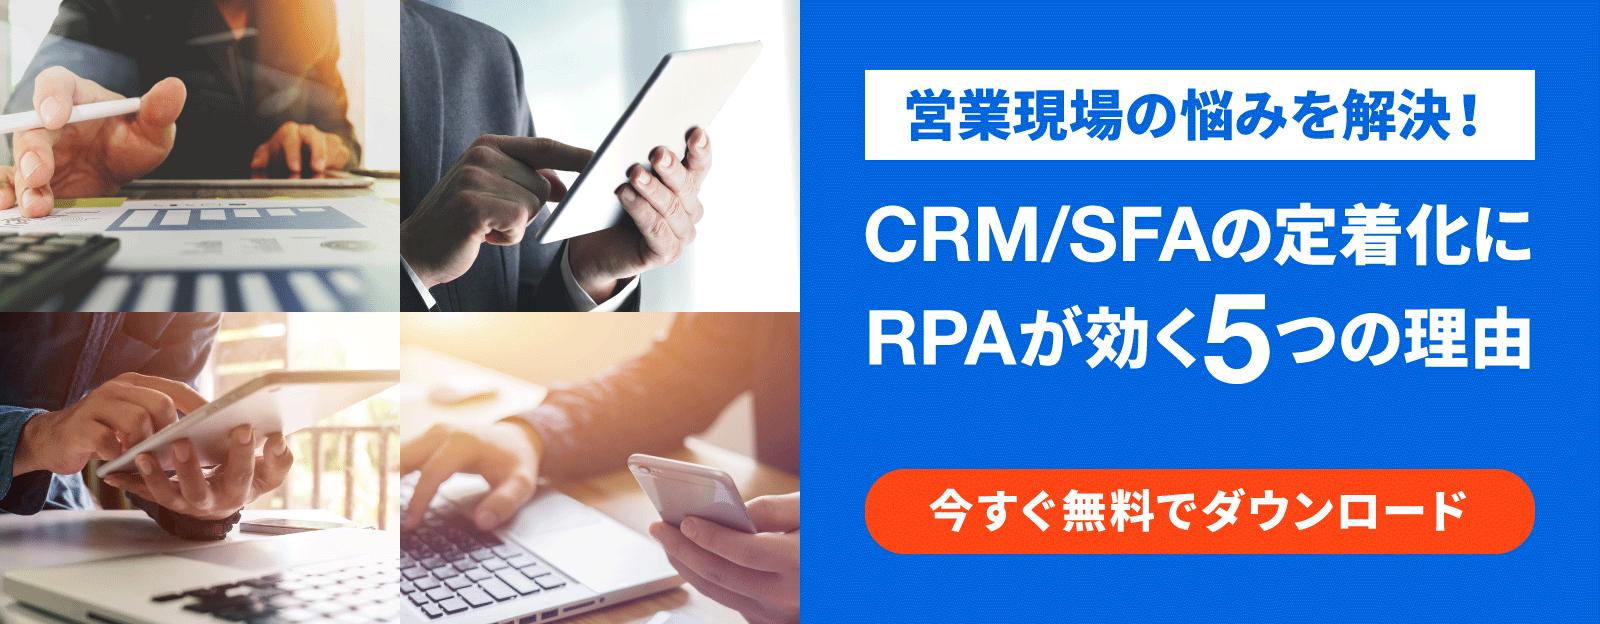 download-crm-sfa-ebook